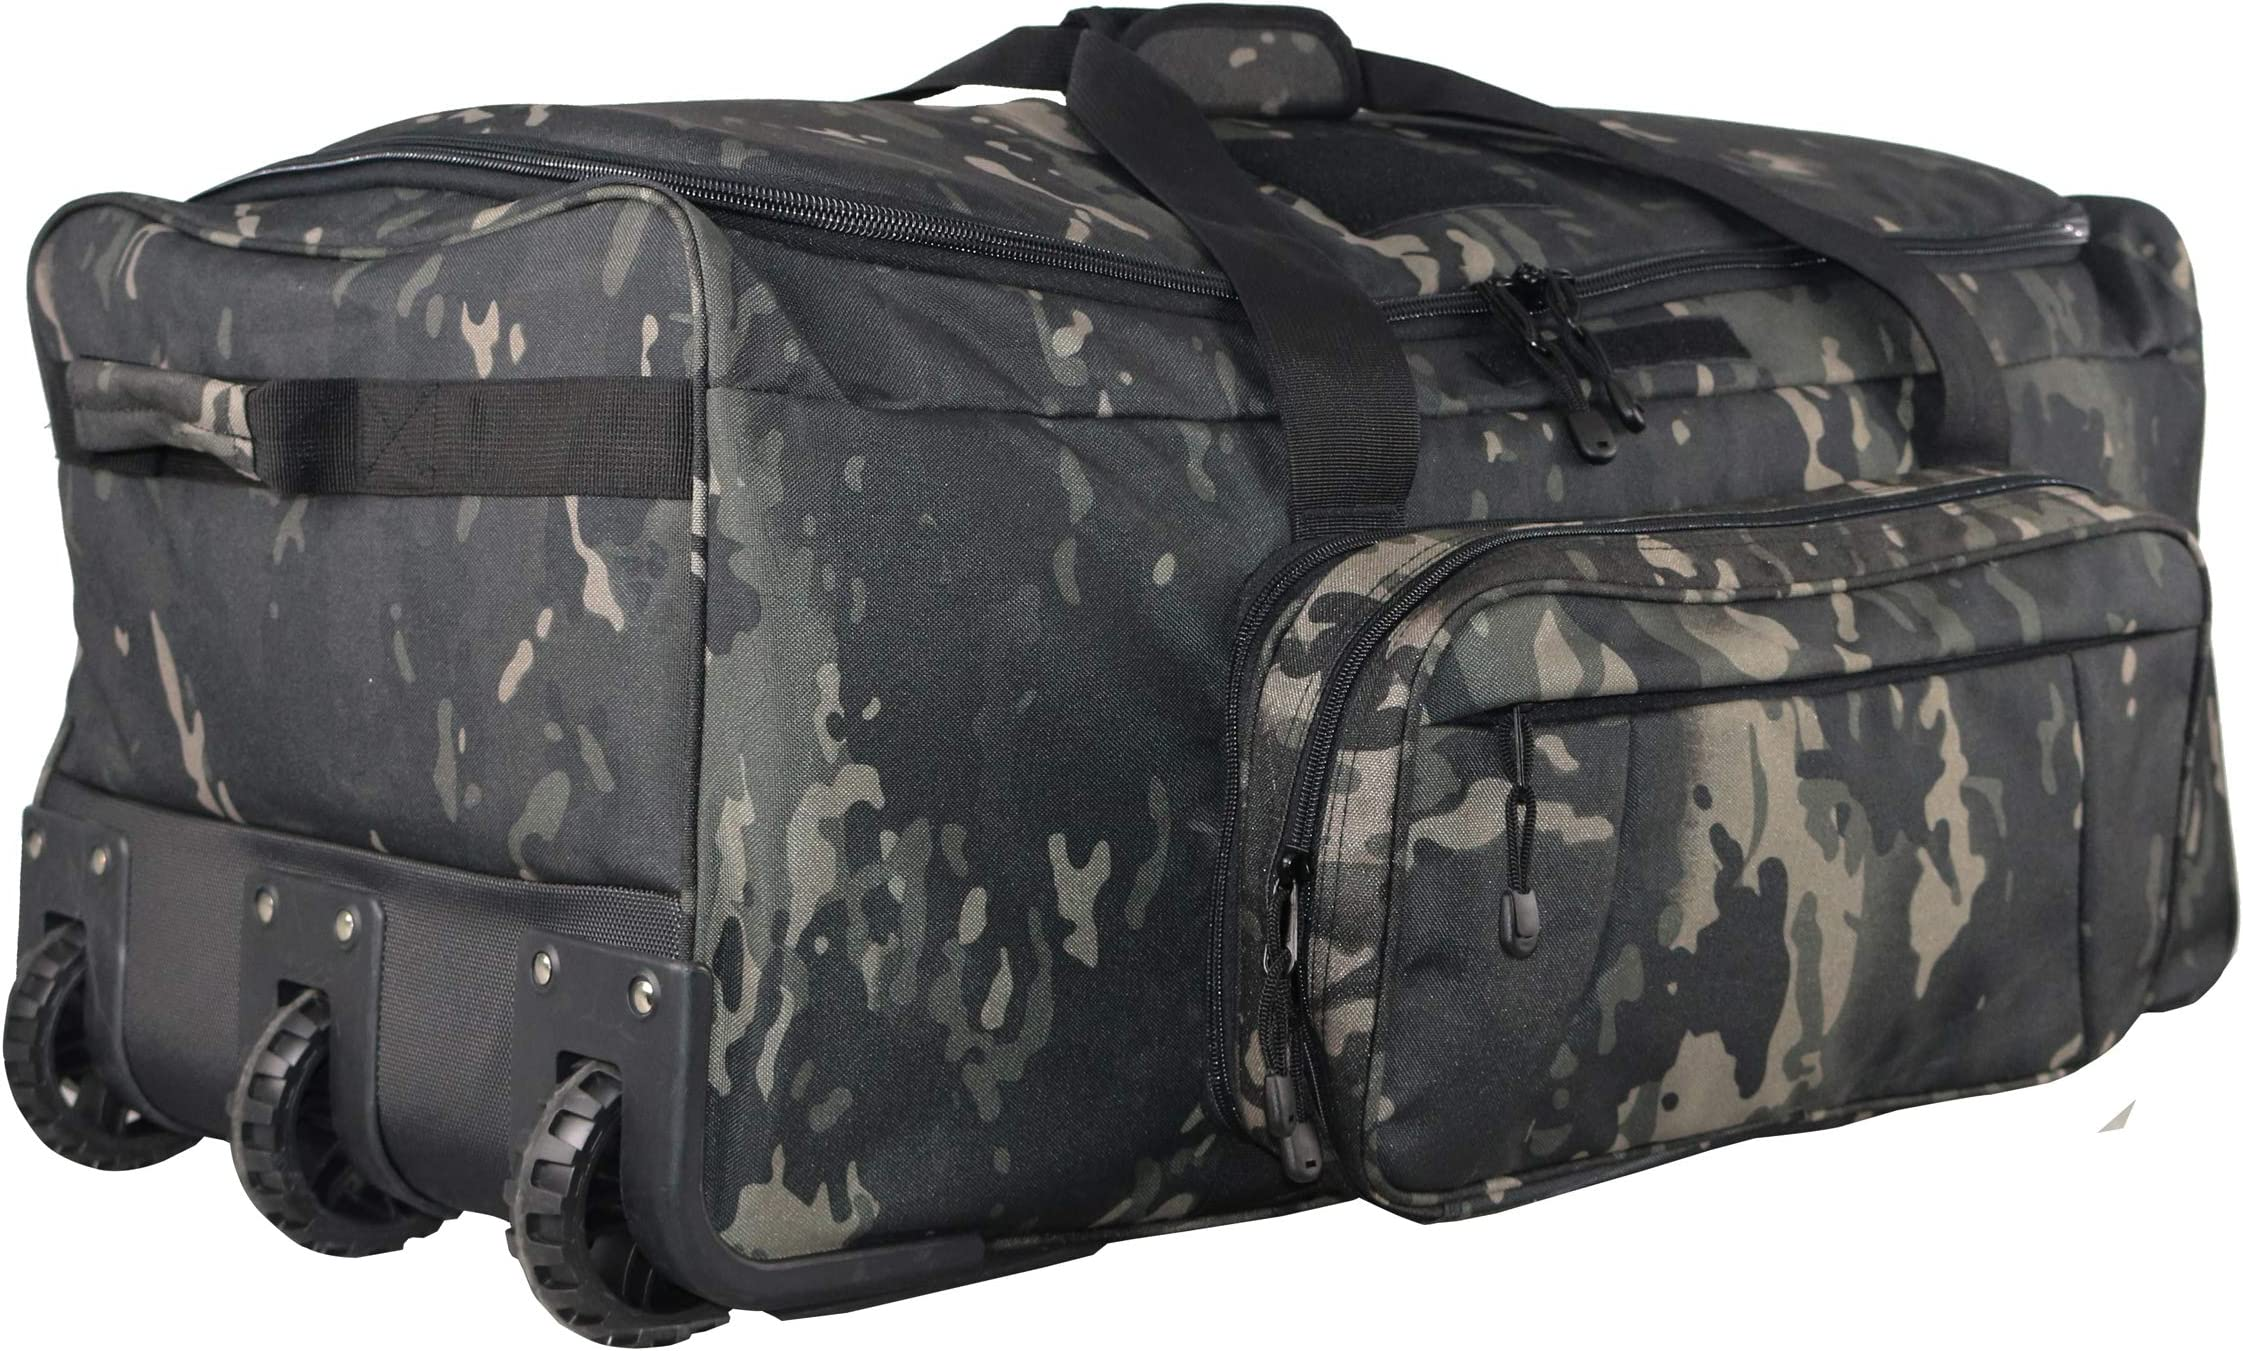 ARMYCAMO Military Tactical Wheeled Deployment Trolley Duffel Bag Heavy-Duty Camping Hiking Running Trekking